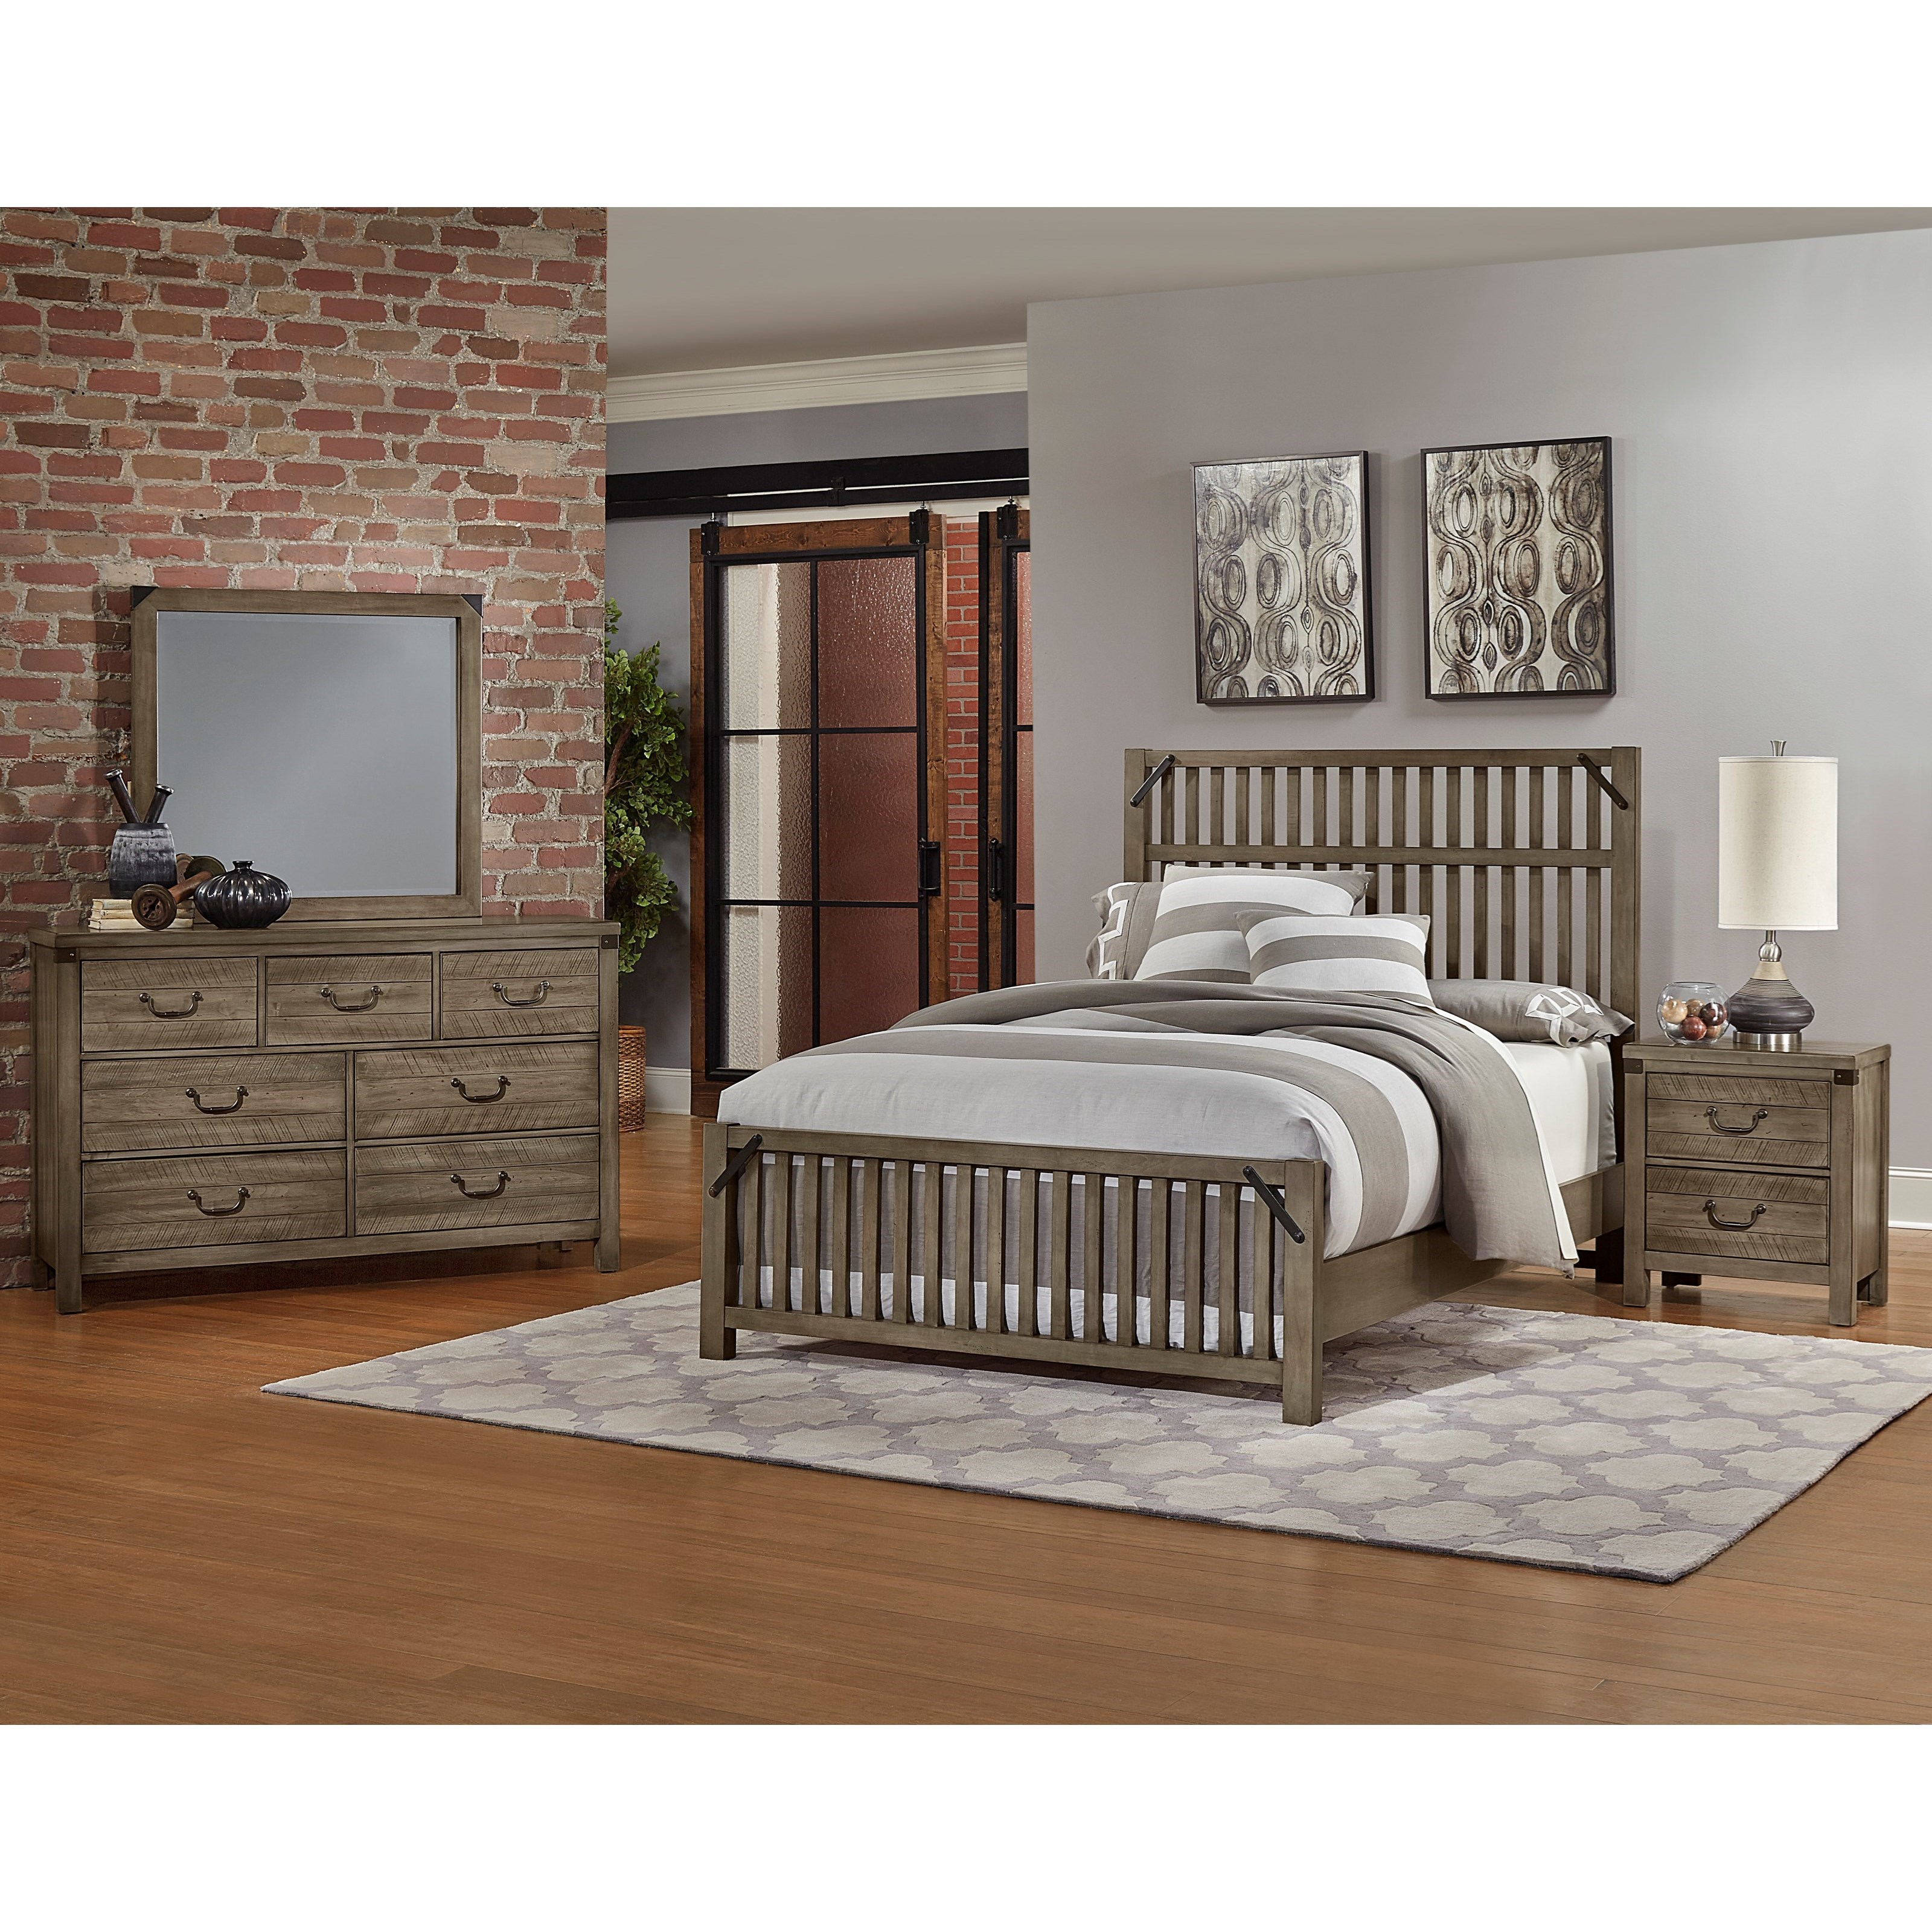 Sedgwick King Bedroom Group by Artisan & Post at Northeast Factory Direct